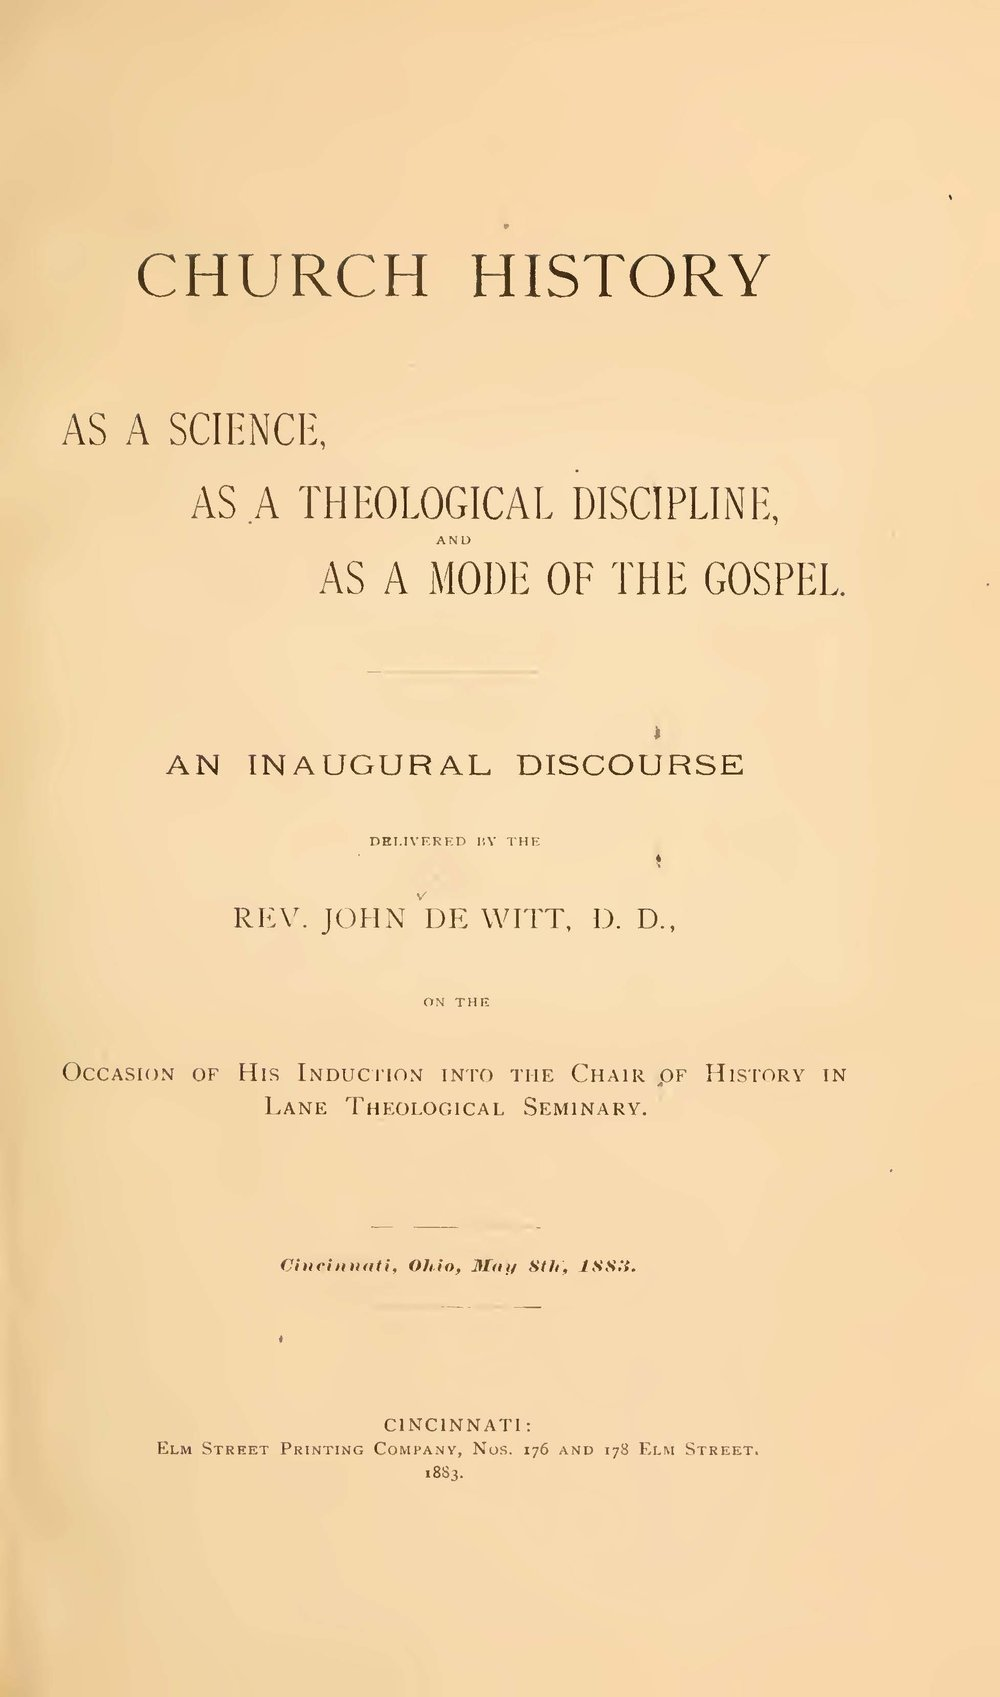 DeWitt, John, Church History as a Science, as a Theological Discipline, and as a Mode of the Gospel An Inaugural Discourse Title Page.jpg